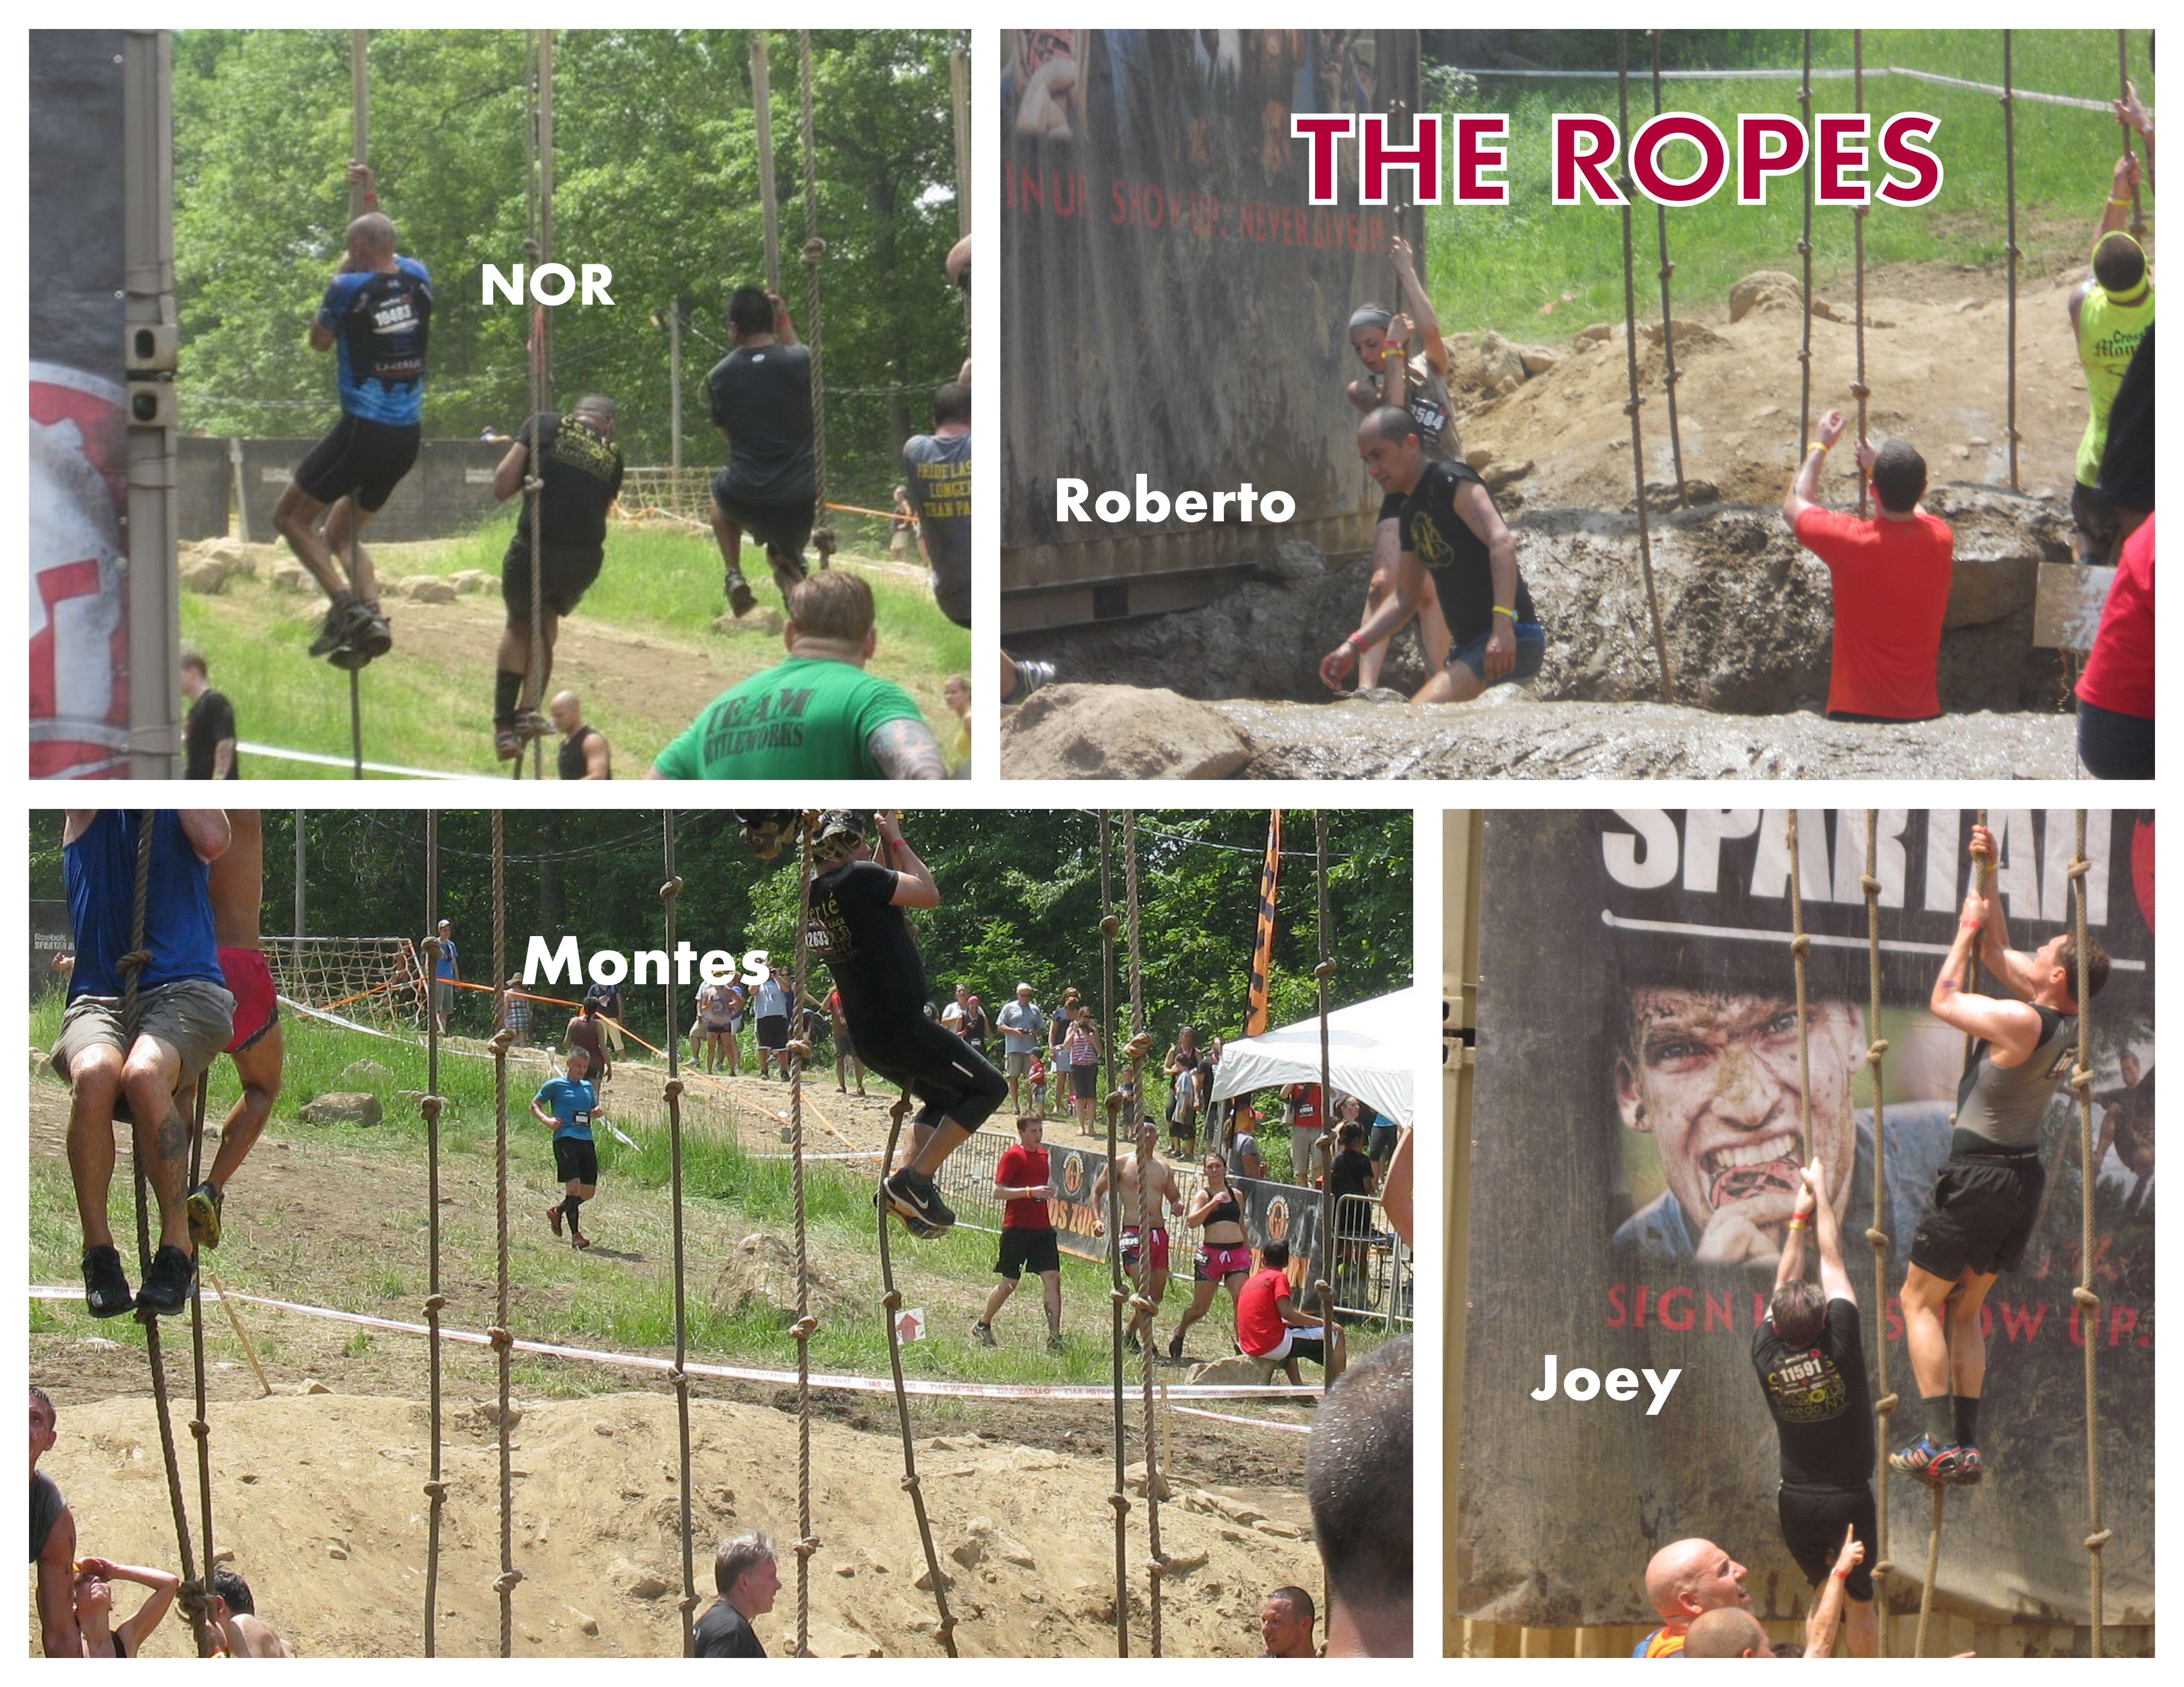 Spartan Race 2013. Collage.ROPES